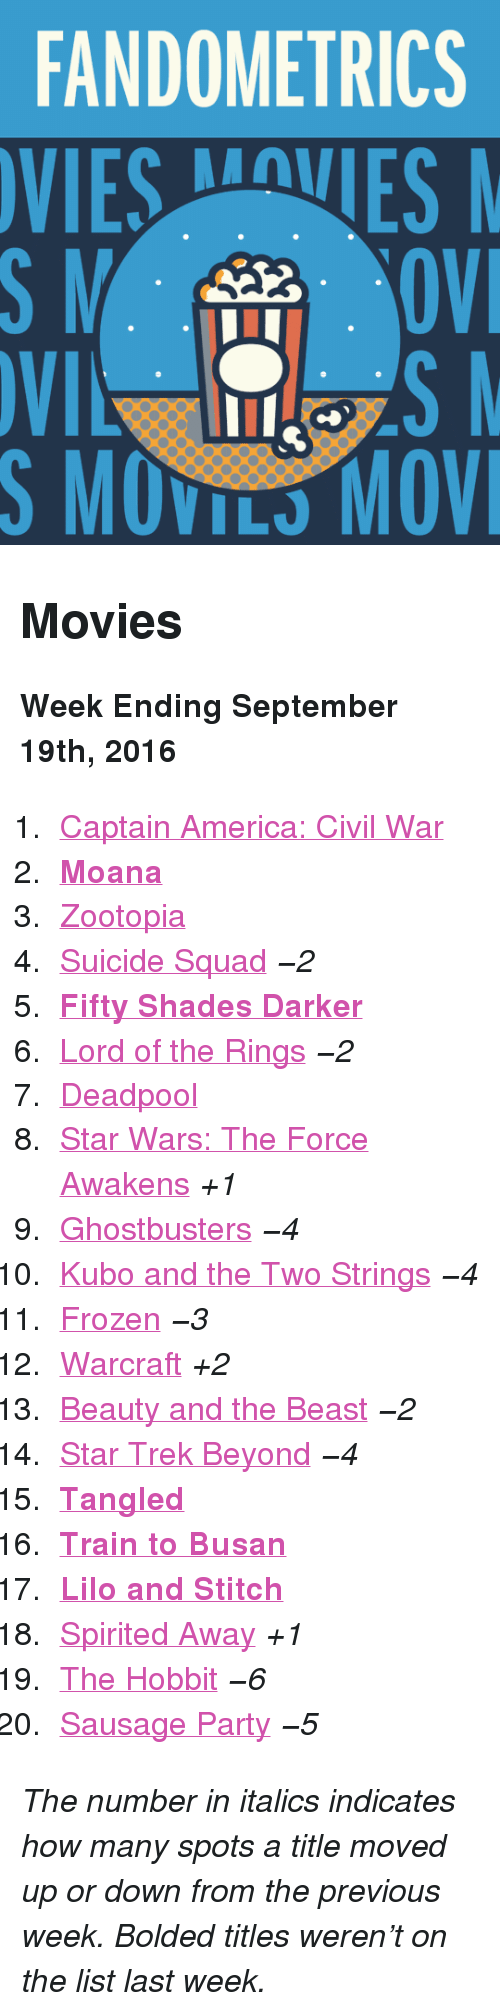 "moana: FANDOMETRICS  VIESVES  S MOVILS MOV <h2>Movies</h2><p><b>Week Ending September 19th, 2016</b></p><ol><li><a href=""http://www.tumblr.com/search/captain%20america%20civil%20war"">Captain America: Civil War</a></li>  <li><a href=""http://www.tumblr.com/search/moana""><b>Moana</b></a></li>  <li><a href=""http://www.tumblr.com/search/zootopia"">Zootopia</a> </li>  <li><a href=""http://www.tumblr.com/search/suicide%20squad"">Suicide Squad</a> <i>−2</i></li>  <li><a href=""http://www.tumblr.com/search/fifty%20shades%20darker""><b>Fifty Shades Darker</b></a></li>  <li><a href=""http://www.tumblr.com/search/lotr"">Lord of the Rings</a> <i>−2</i></li>  <li><a href=""http://www.tumblr.com/search/deadpool"">Deadpool</a></li>  <li><a href=""http://www.tumblr.com/search/the%20force%20awakens"">Star Wars: The Force Awakens</a> <i>+1</i></li>  <li><a href=""http://www.tumblr.com/search/ghostbusters"">Ghostbusters</a> <i>−4</i></li>  <li><a href=""http://www.tumblr.com/search/kubo%20and%20the%20two%20strings"">Kubo and the Two Strings</a> <i>−4</i></li>  <li><a href=""http://www.tumblr.com/search/frozen"">Frozen</a> <i>−3</i></li>  <li><a href=""http://www.tumblr.com/search/warcraft"">Warcraft</a> <i>+2</i></li>  <li><a href=""http://www.tumblr.com/search/beauty%20and%20the%20beast"">Beauty and the Beast</a> <i>−2</i></li>  <li><a href=""http://www.tumblr.com/search/star%20trek%20beyond"">Star Trek Beyond</a> <i>−4</i></li>  <li><a href=""http://www.tumblr.com/search/tangled""><b>Tangled</b></a></li>  <li><a href=""http://www.tumblr.com/search/train%20to%20busan""><b>Train to Busan</b></a></li>  <li><a href=""http://www.tumblr.com/search/lilo%20and%20stitch""><b>Lilo and Stitch</b></a></li>  <li><a href=""http://www.tumblr.com/search/spirited%20away"">Spirited Away</a> <i>+1</i></li>  <li><a href=""http://www.tumblr.com/search/the%20hobbit"">The Hobbit</a> <i>−6</i></li>  <li><a href=""http://www.tumblr.com/search/sausage%20party"">Sausage Party</a> <i>−5</i></li></ol><p><i>The number in italics indicates how many spots a title moved up or down from the previous week. Bolded titles weren't on the list last week.</i></p>"